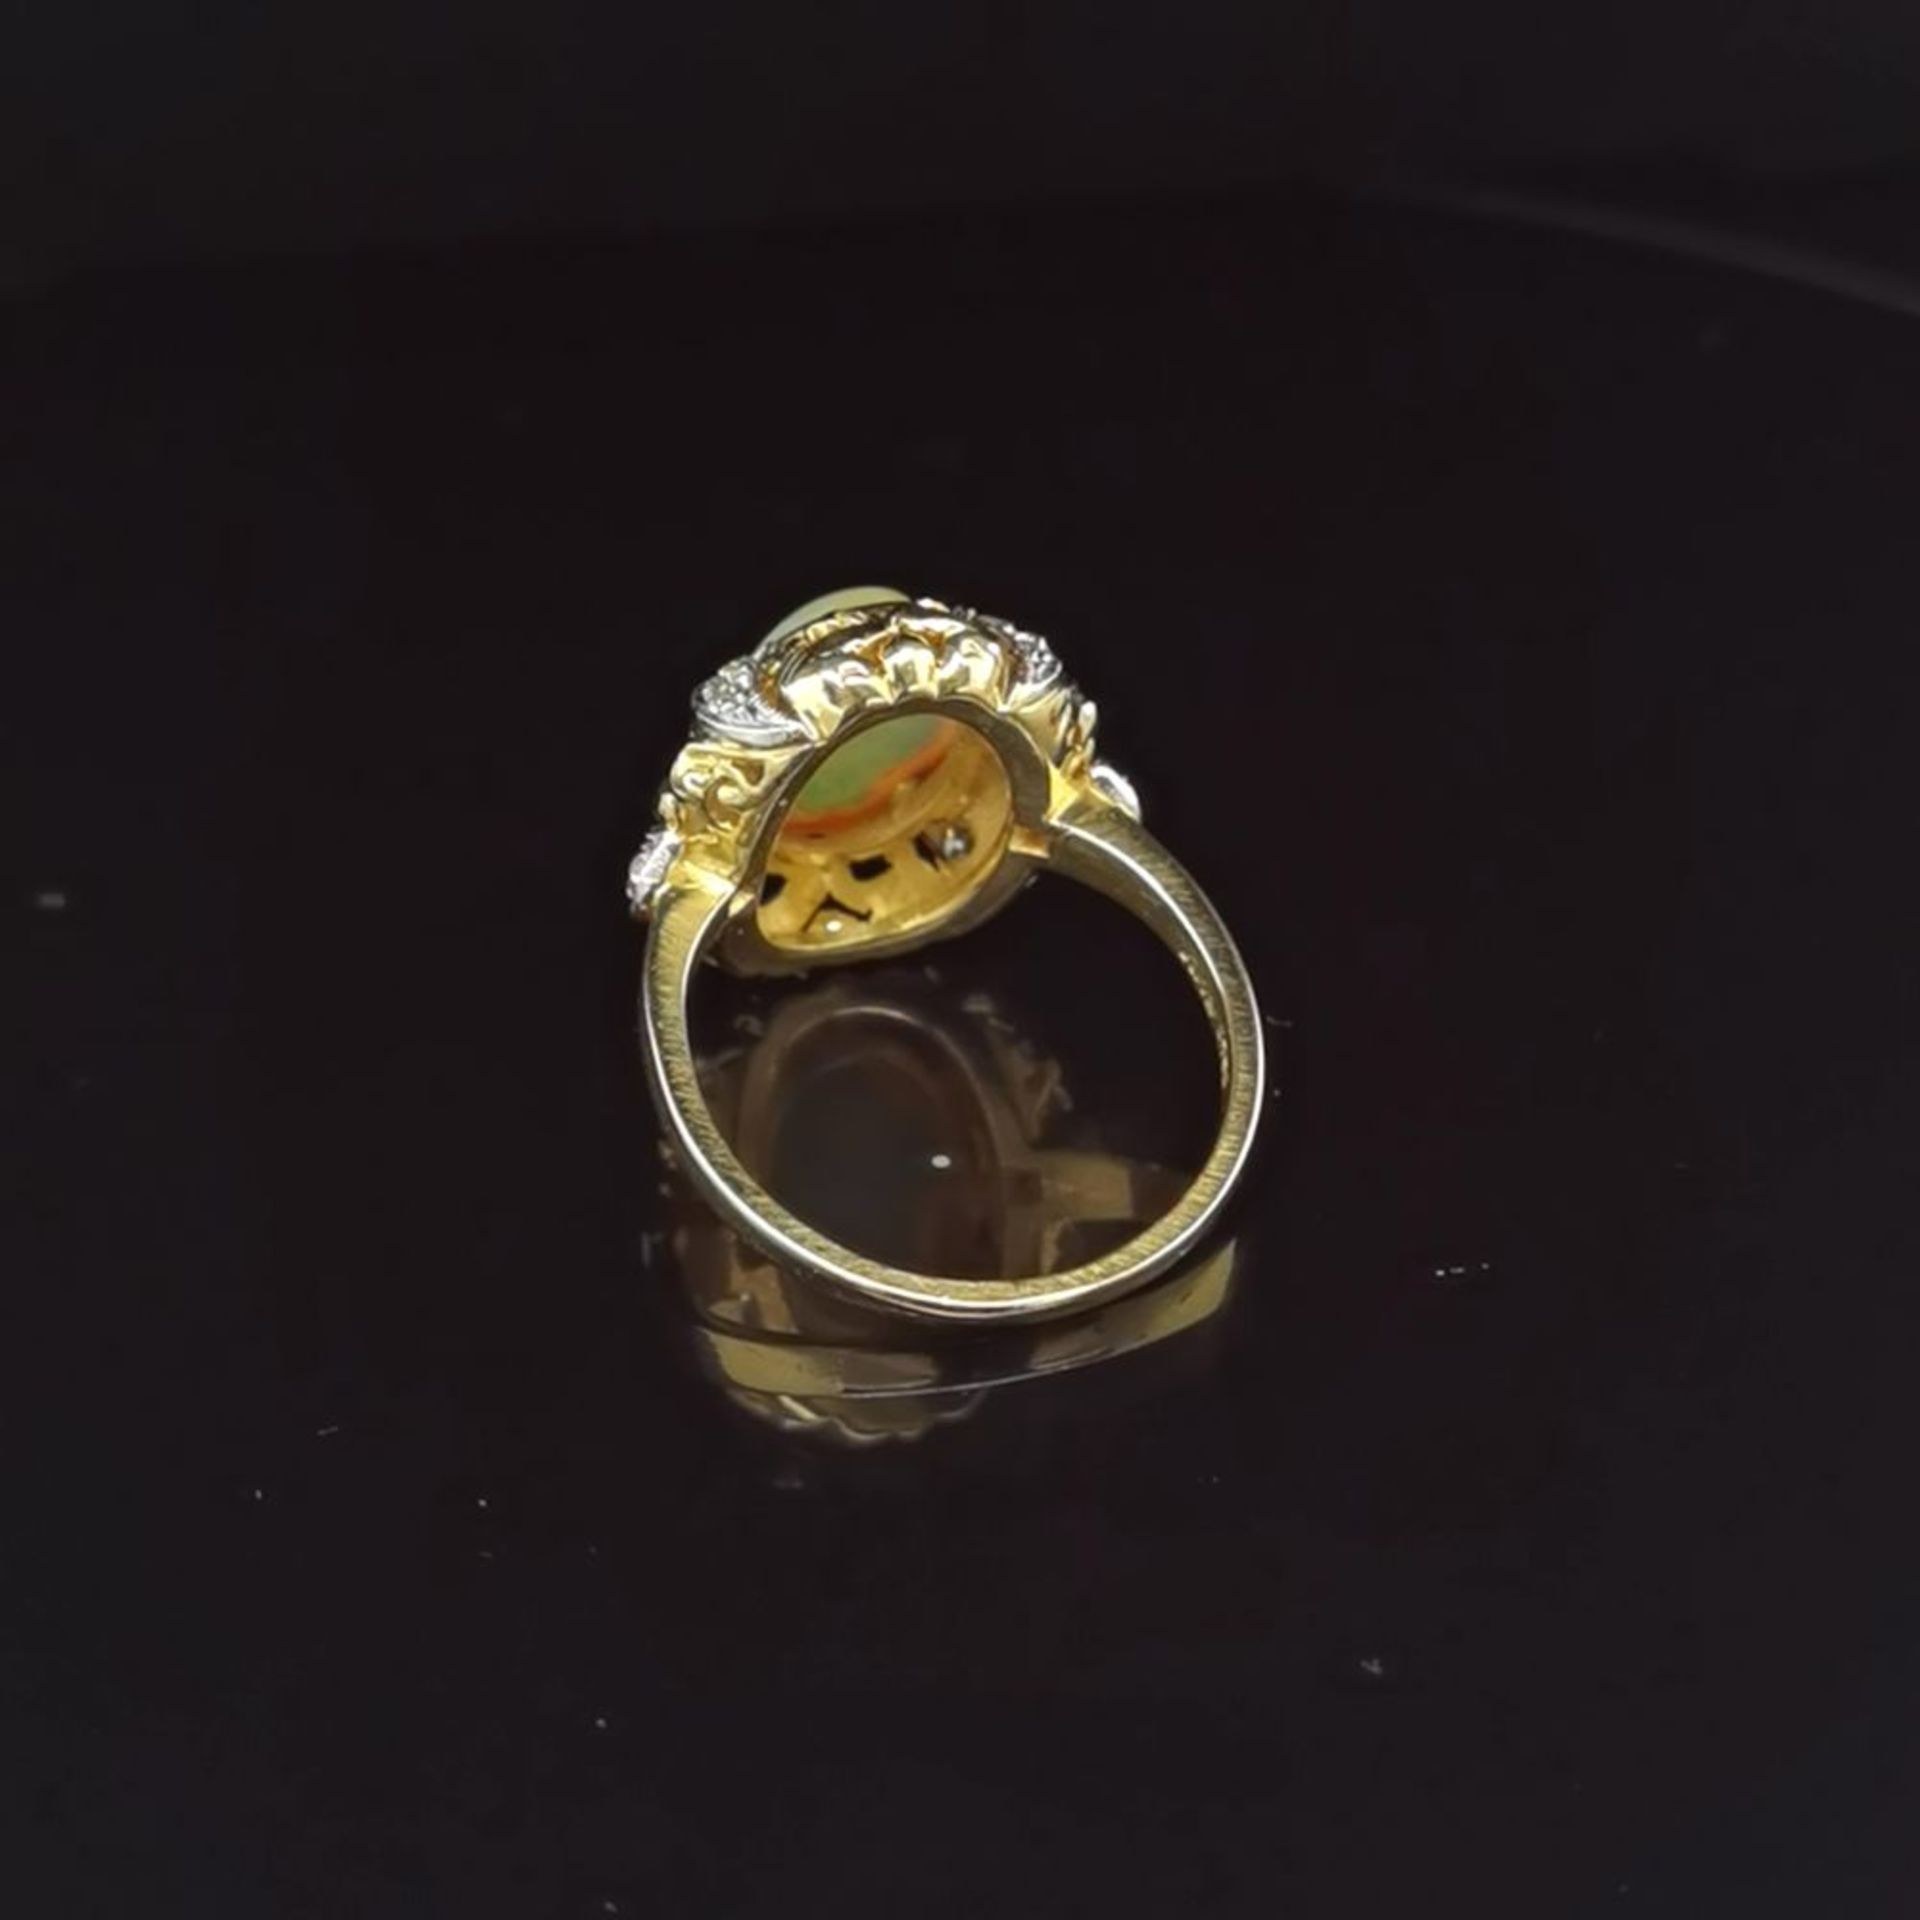 Opal-Brillant-Ring, 750 Gelbgold 7,5 - Image 3 of 3